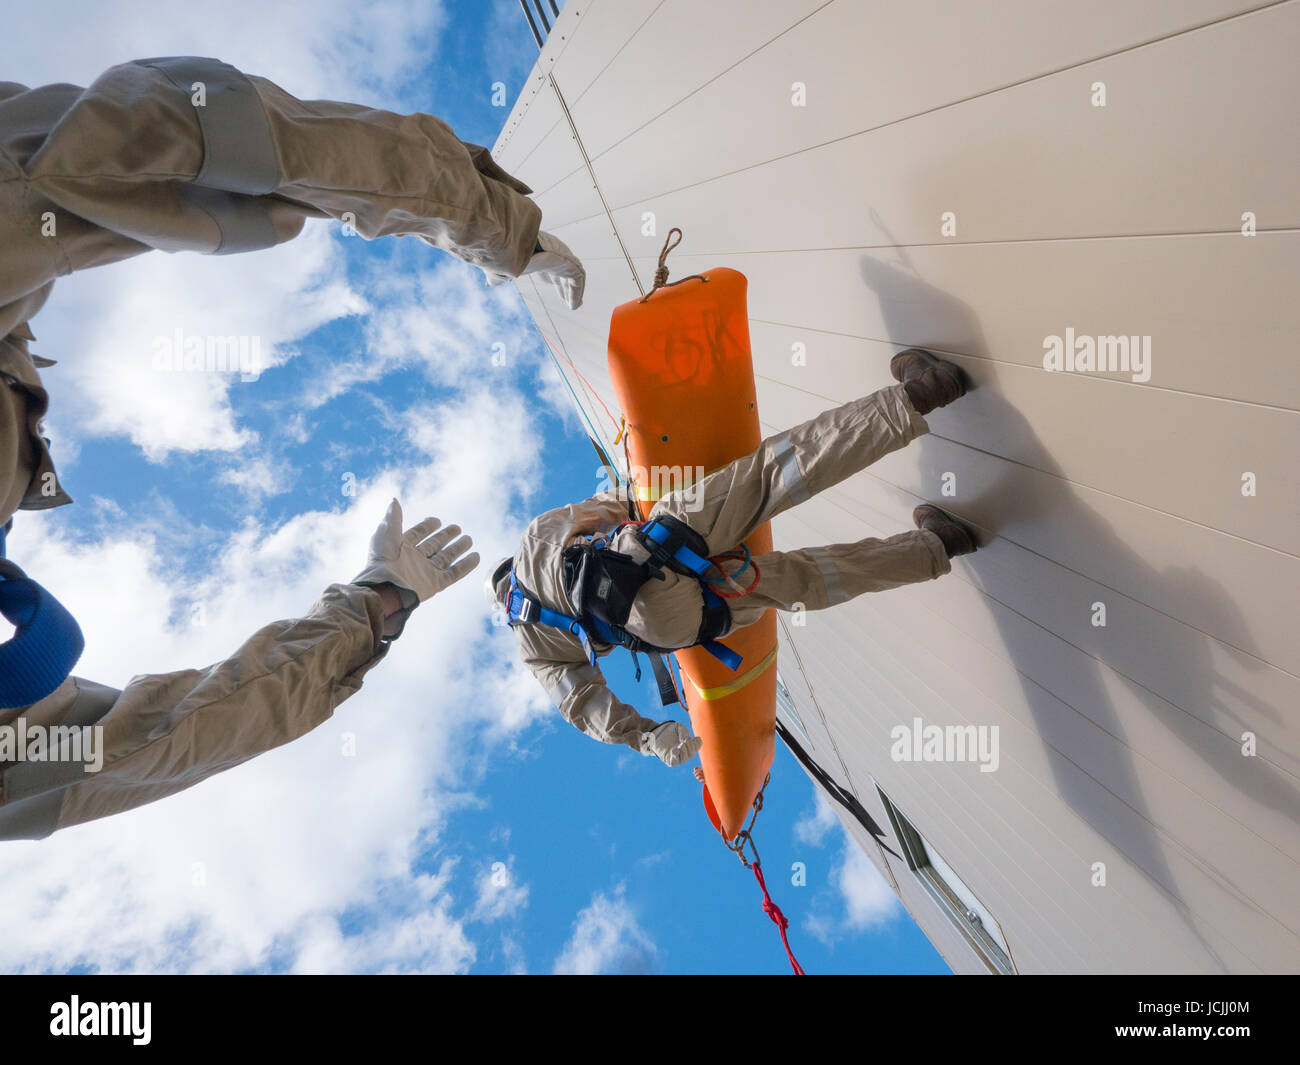 Crews practice high angle rescue at a public training facility at an industrial site in Oregon using ropes, litters - Stock Image